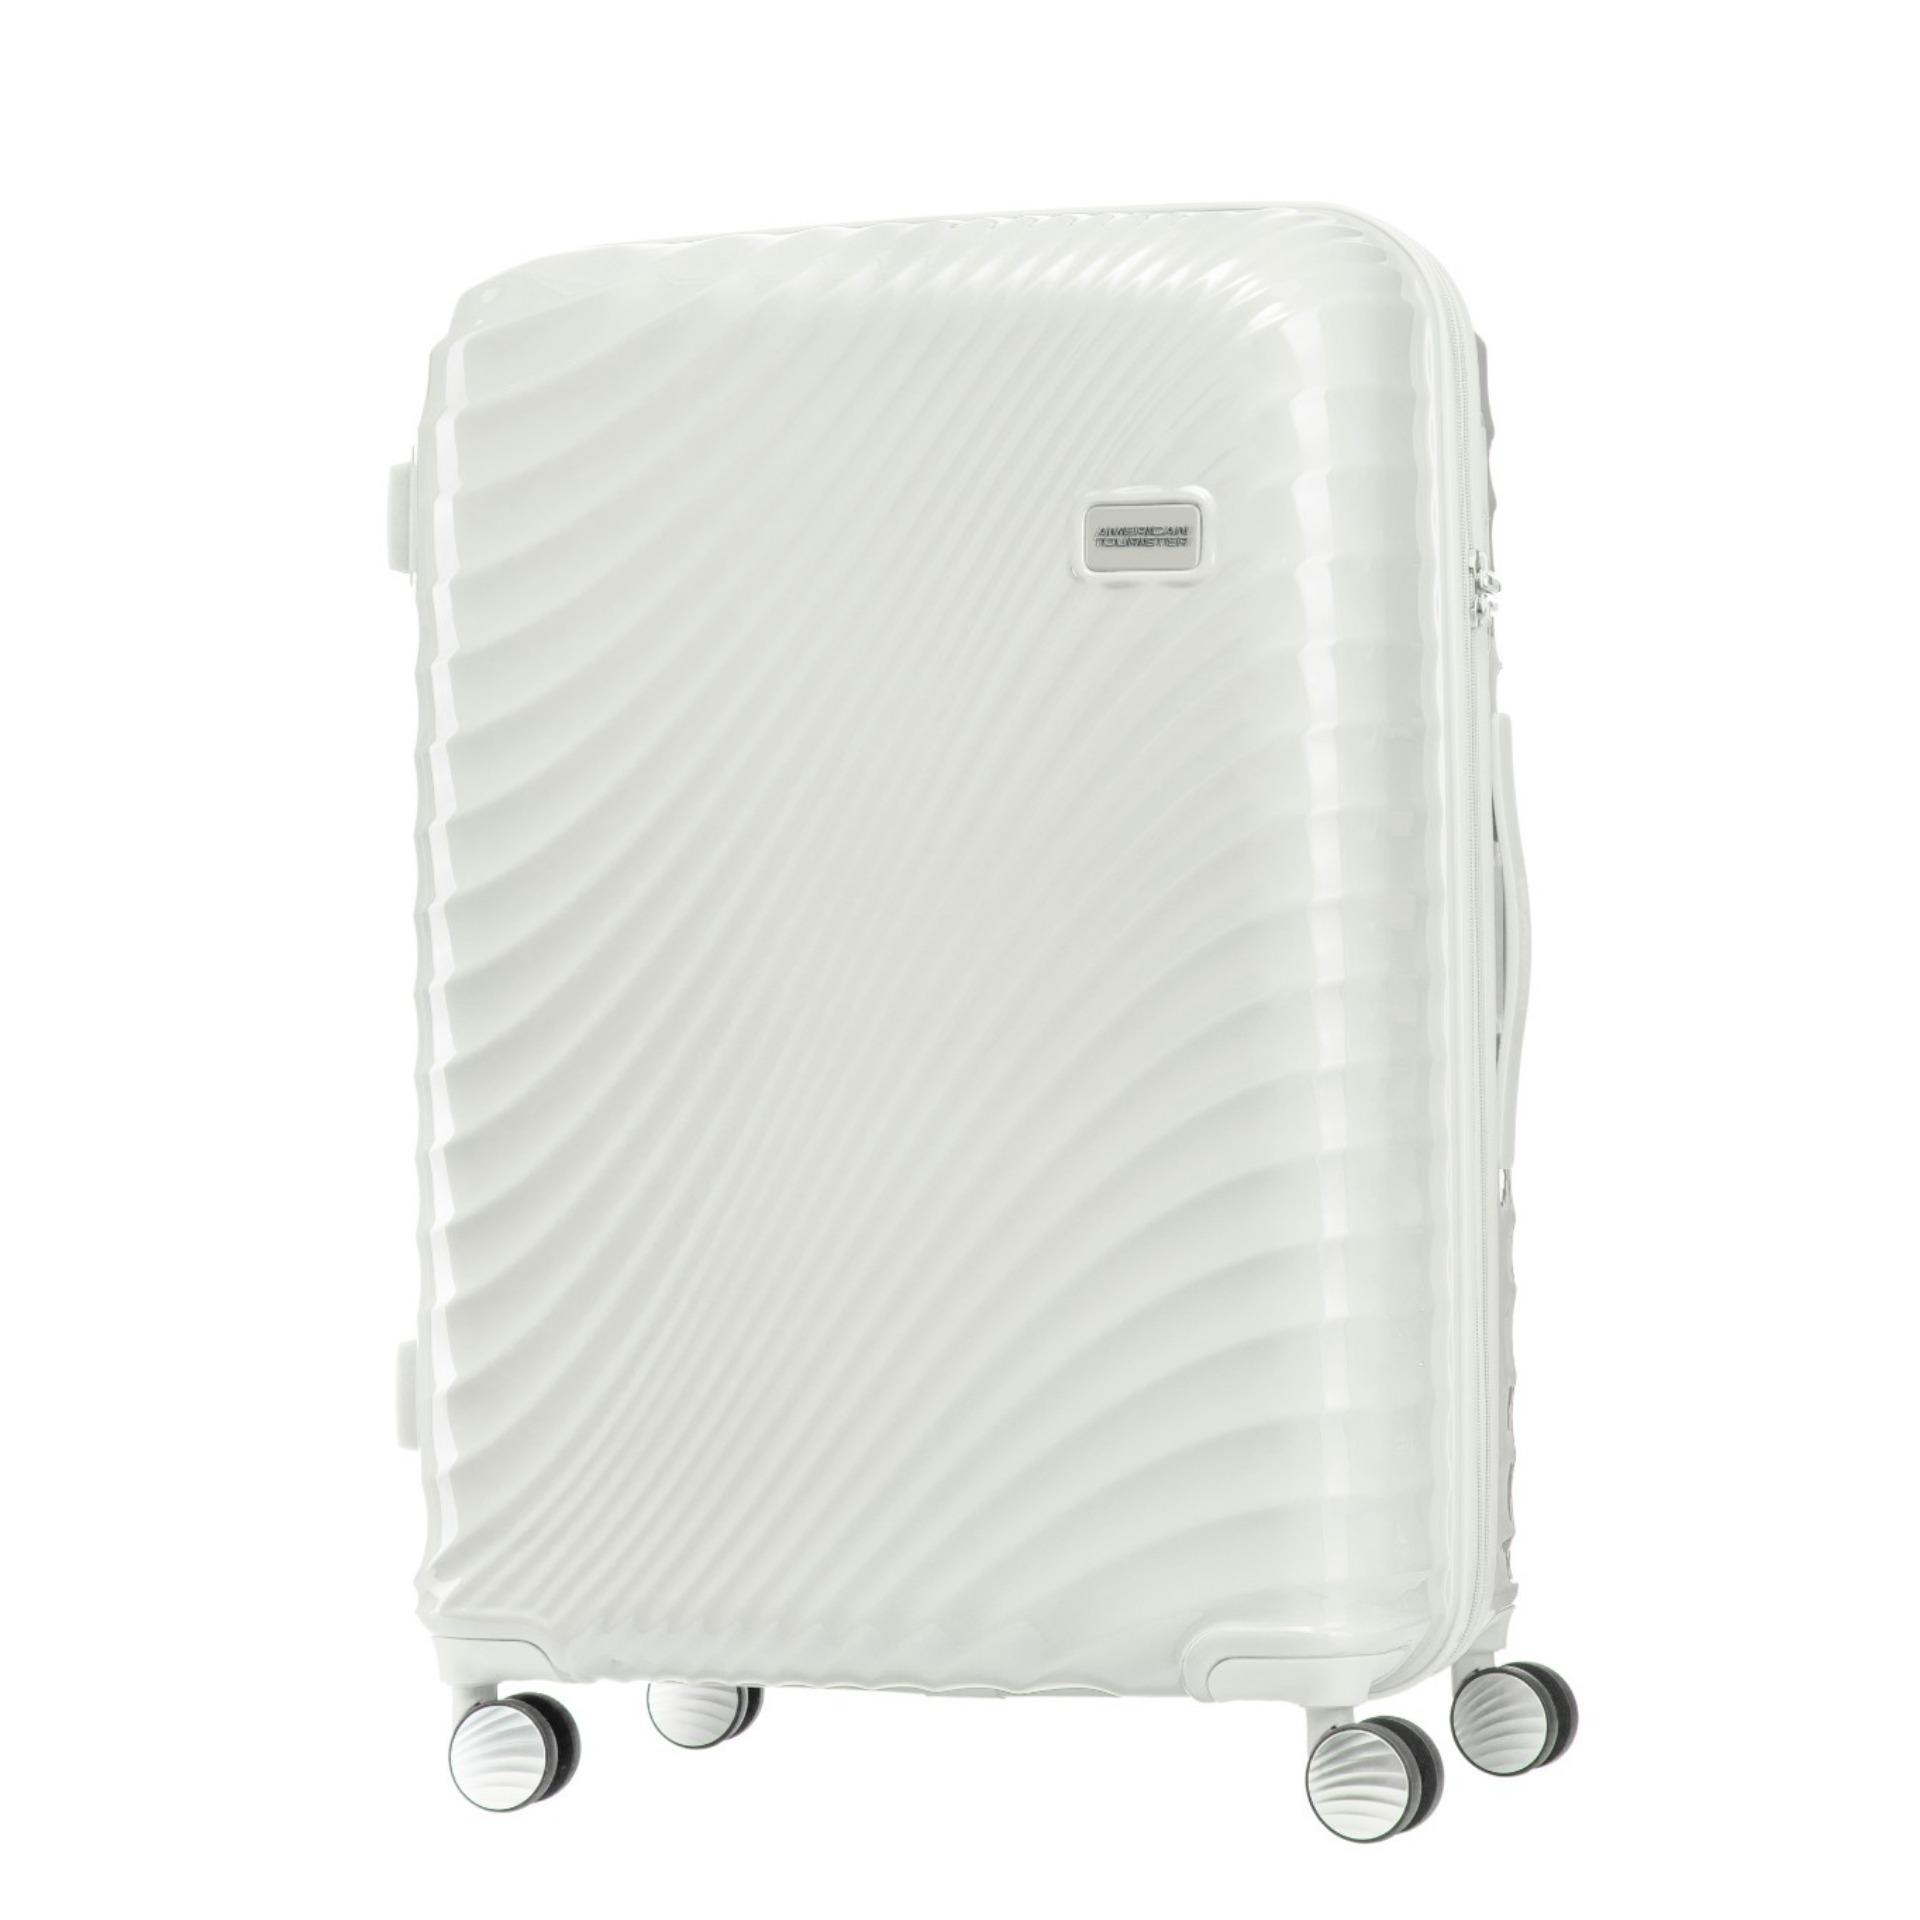 4370ffb57 American Tourister Philippines: American Tourister price list ...